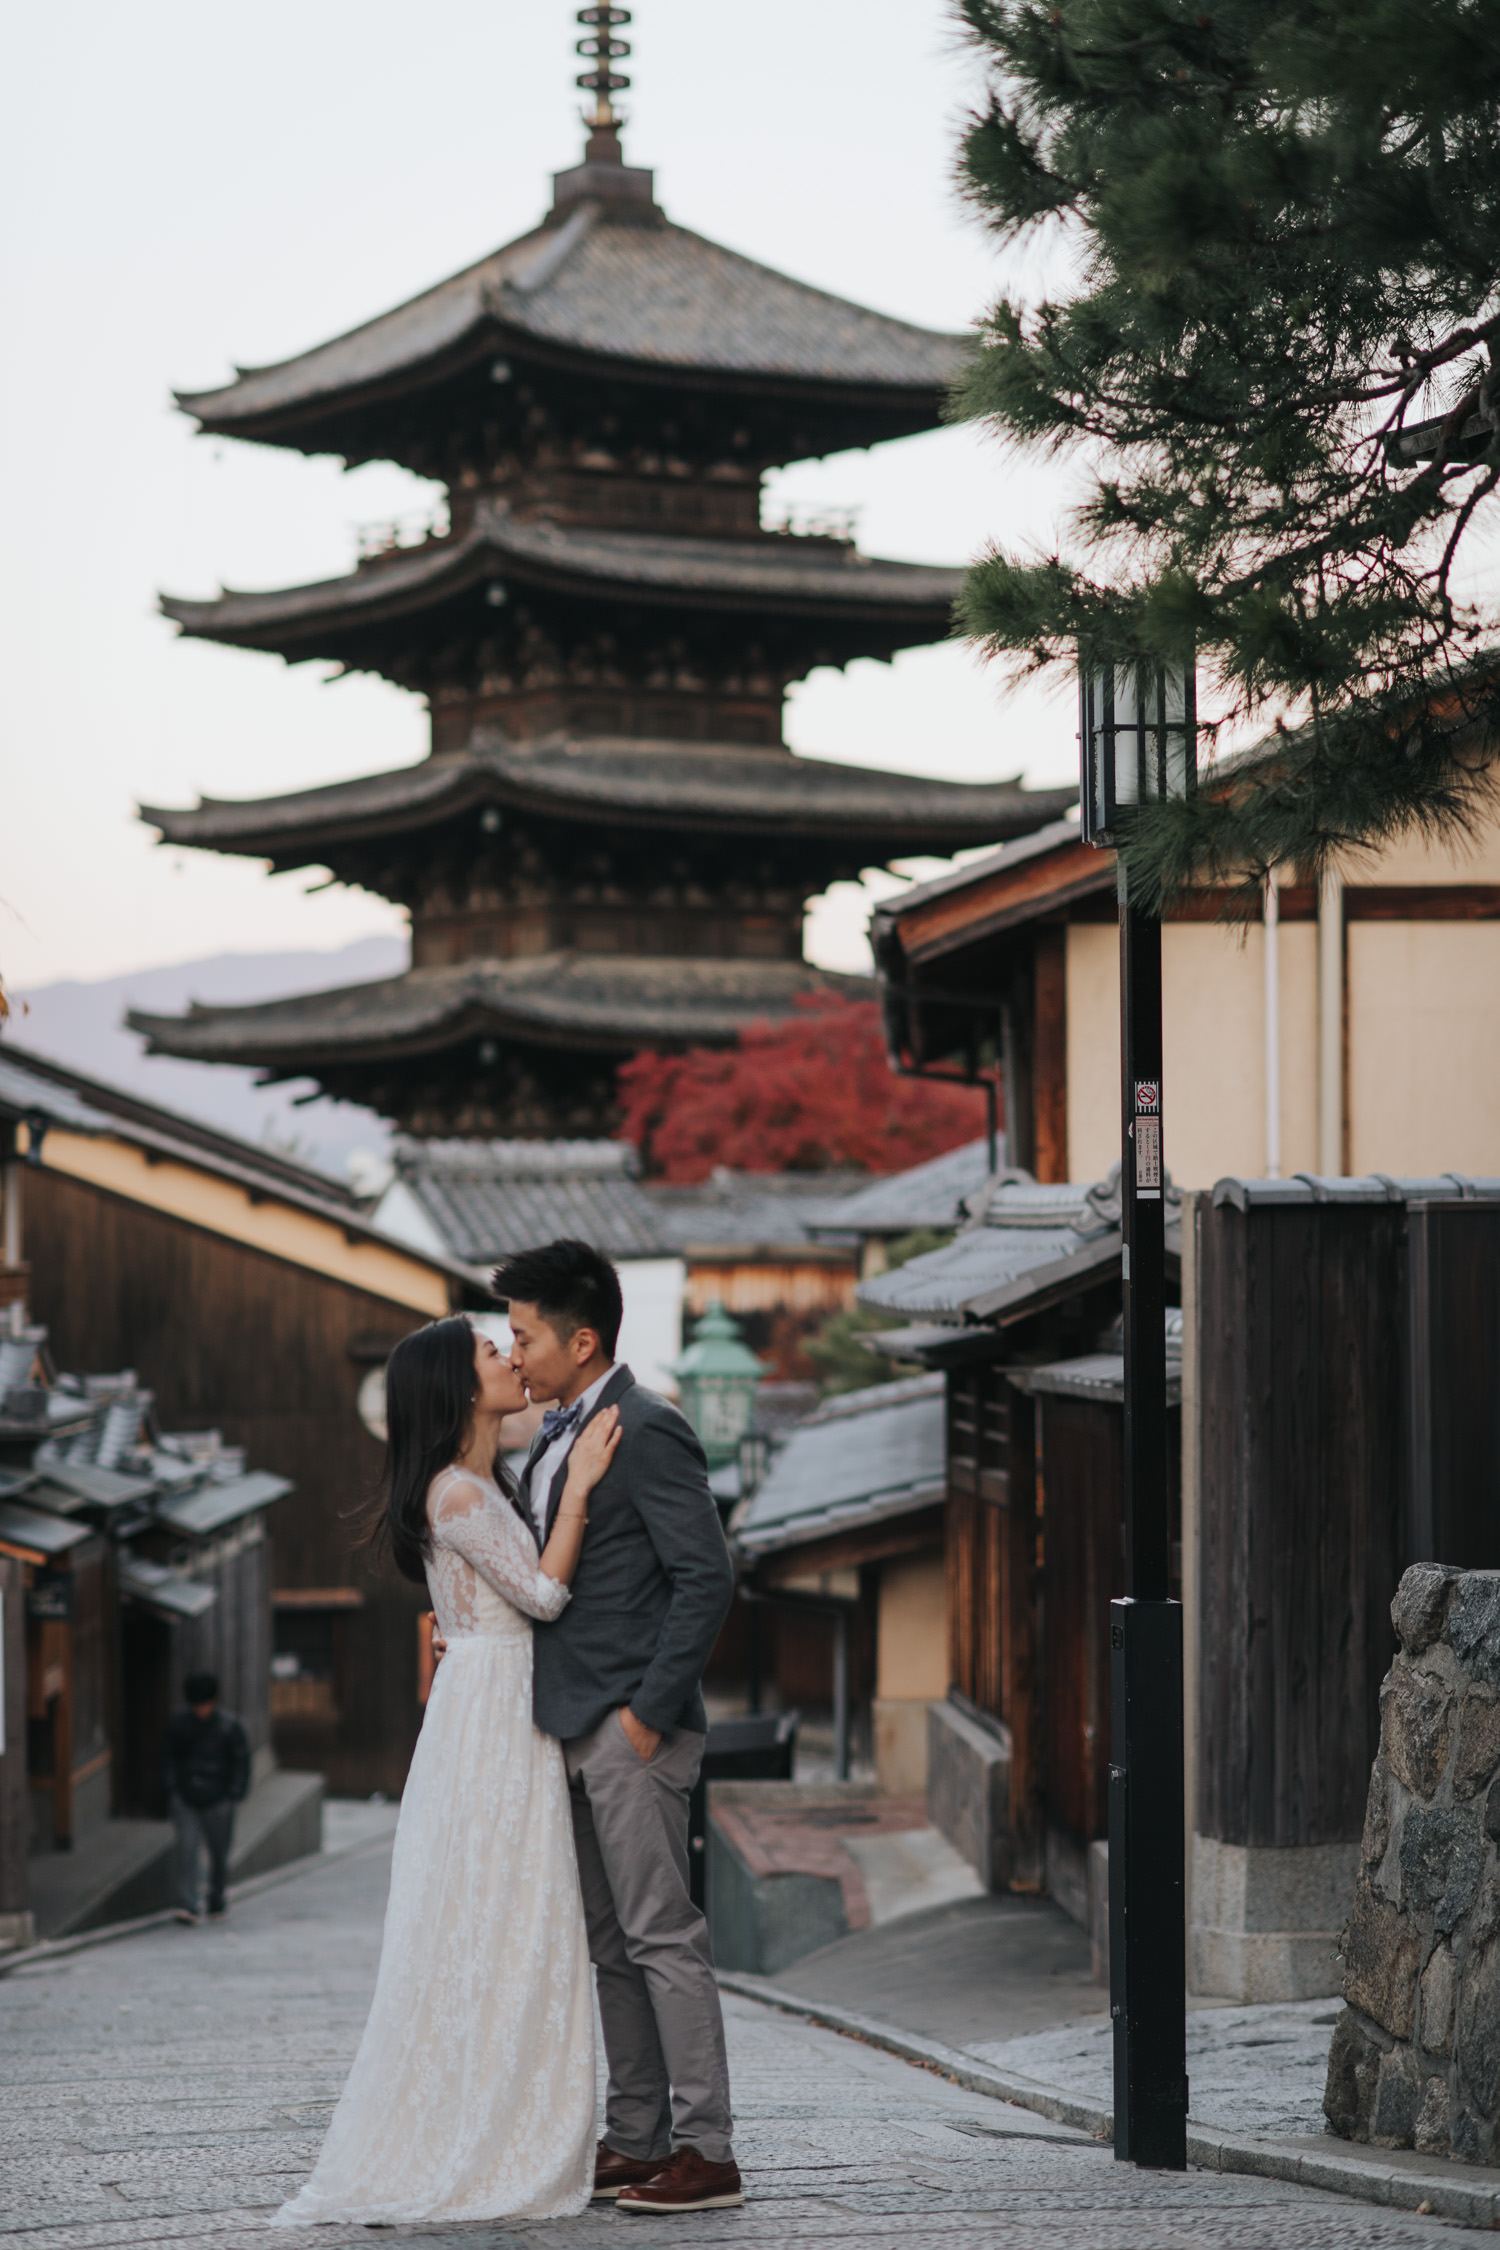 Engagement Photo in Kyoto